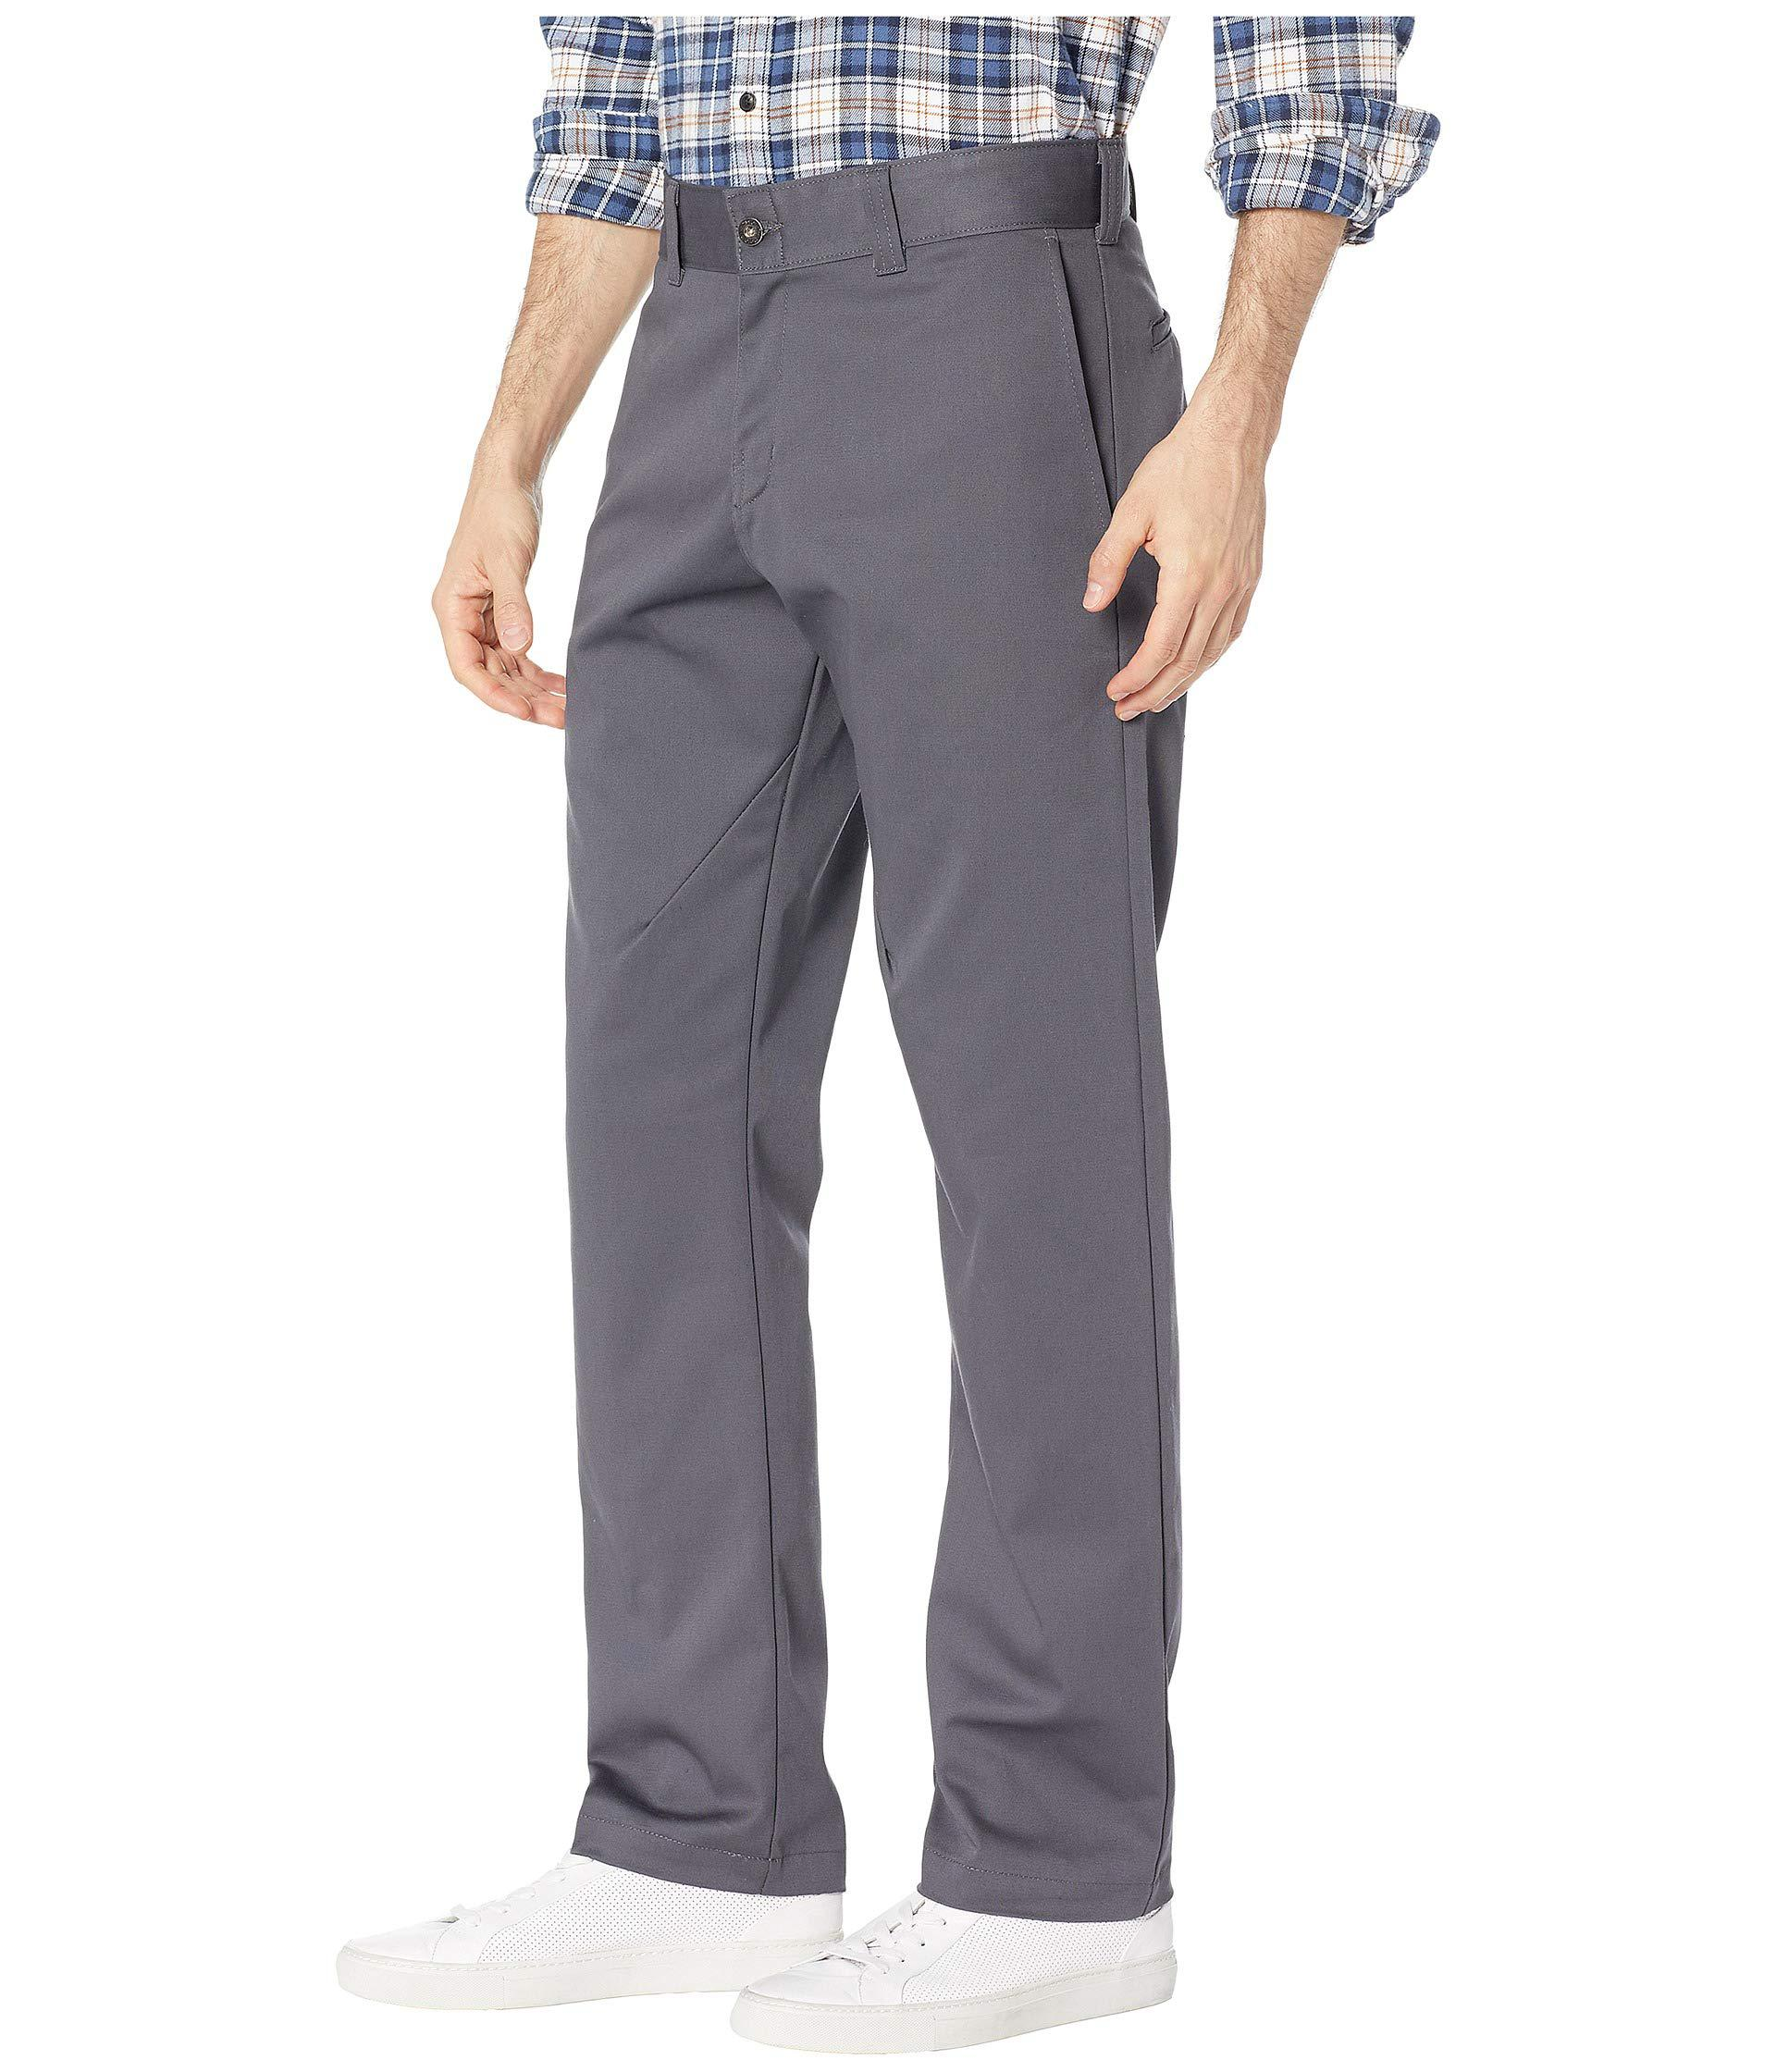 8741184f105fe Lyst - Dickies 67 Collection - Tough Max Flex Twill Pants (desert Sand)  Men's Casual Pants in Gray for Men